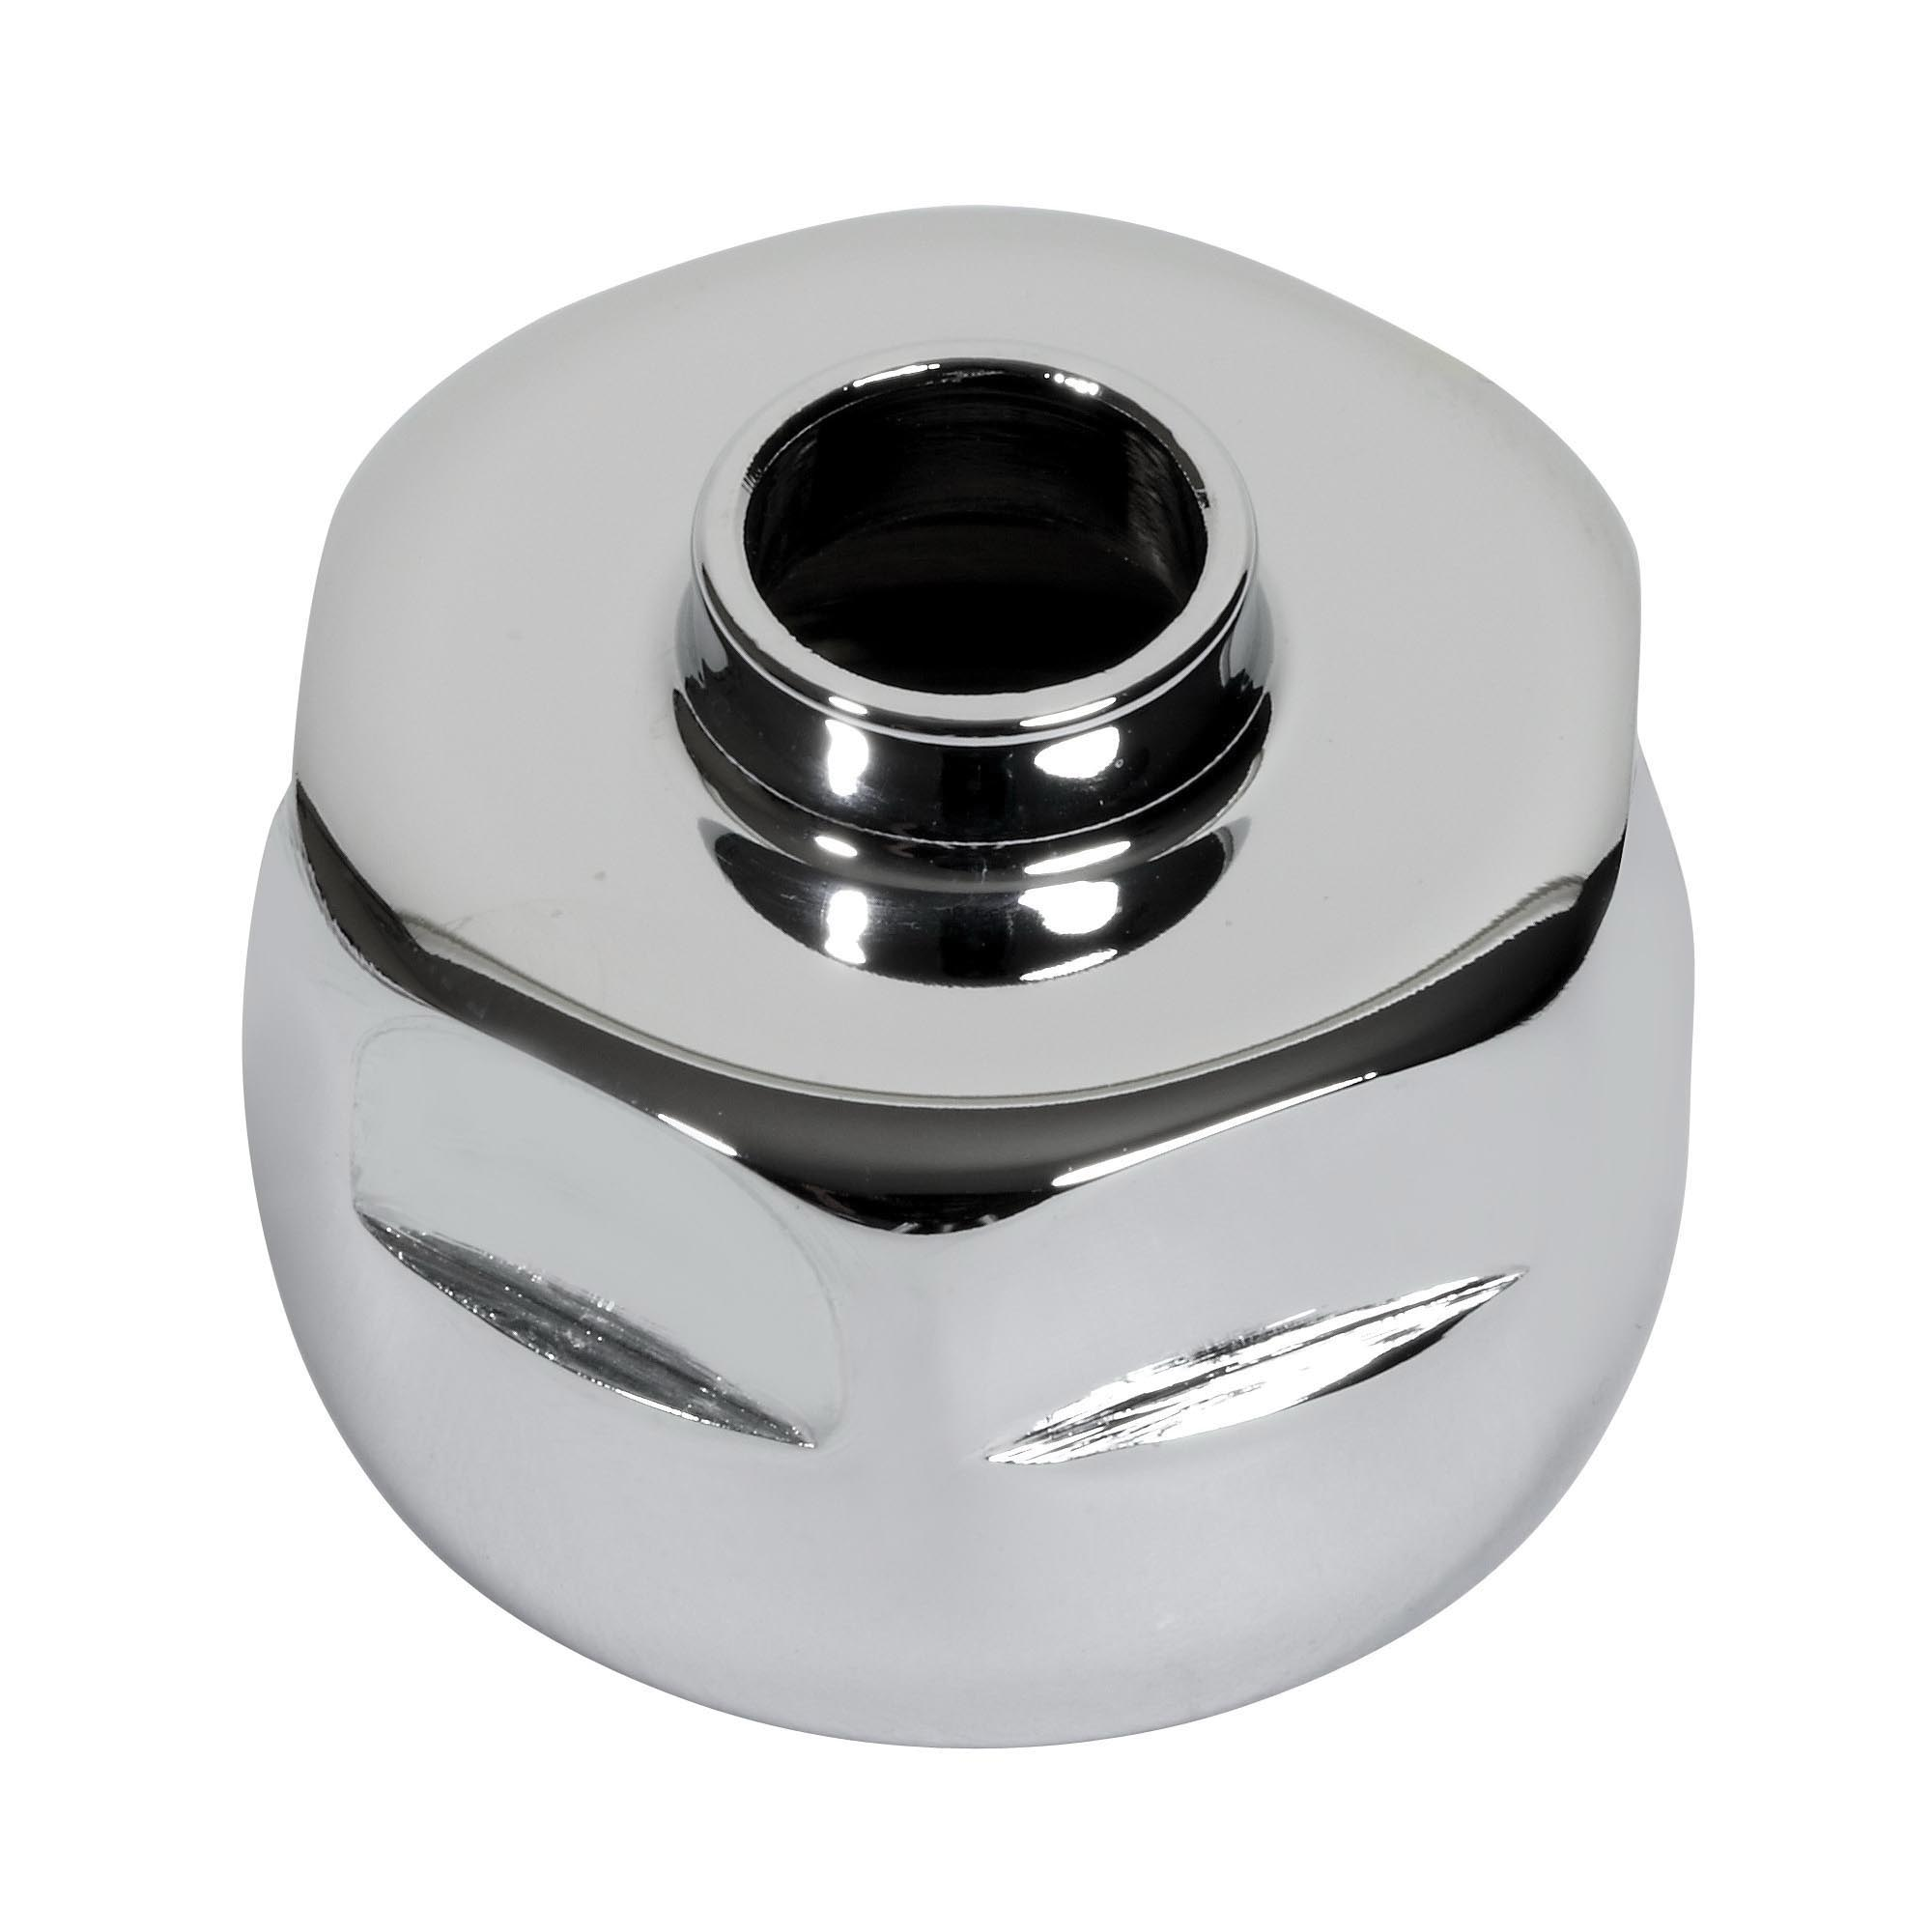 American Standard PROSITE 904939-0020A Bonnet Nut, For Use With Monterrey® Wall Mount Utility Faucet, Polished Chrome, Import